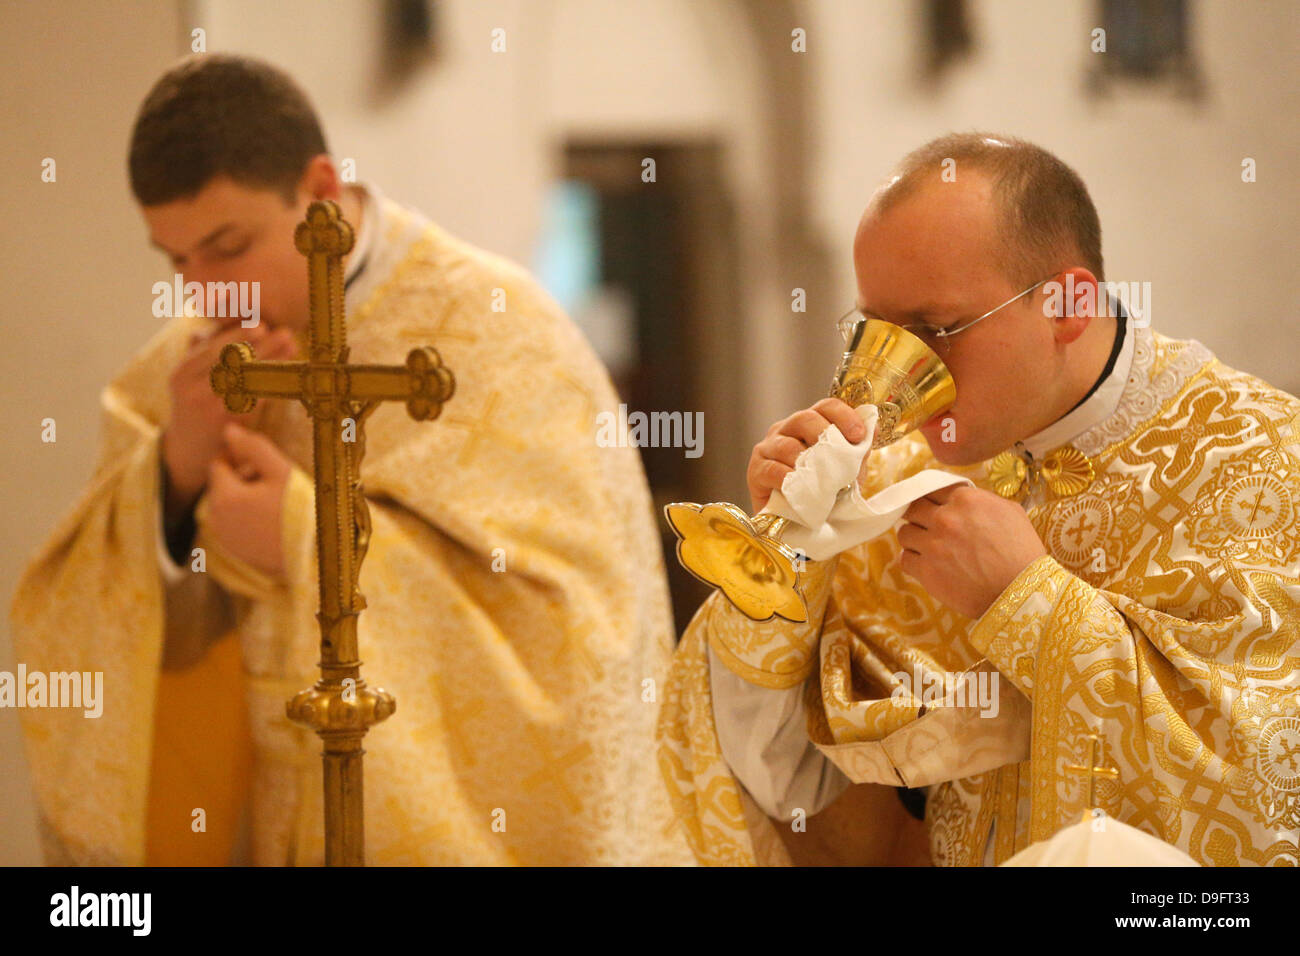 Orthodox Mass, St. Jean Chrysotome liturgy, Villemomble, Seine-St. Denis, France - Stock Image